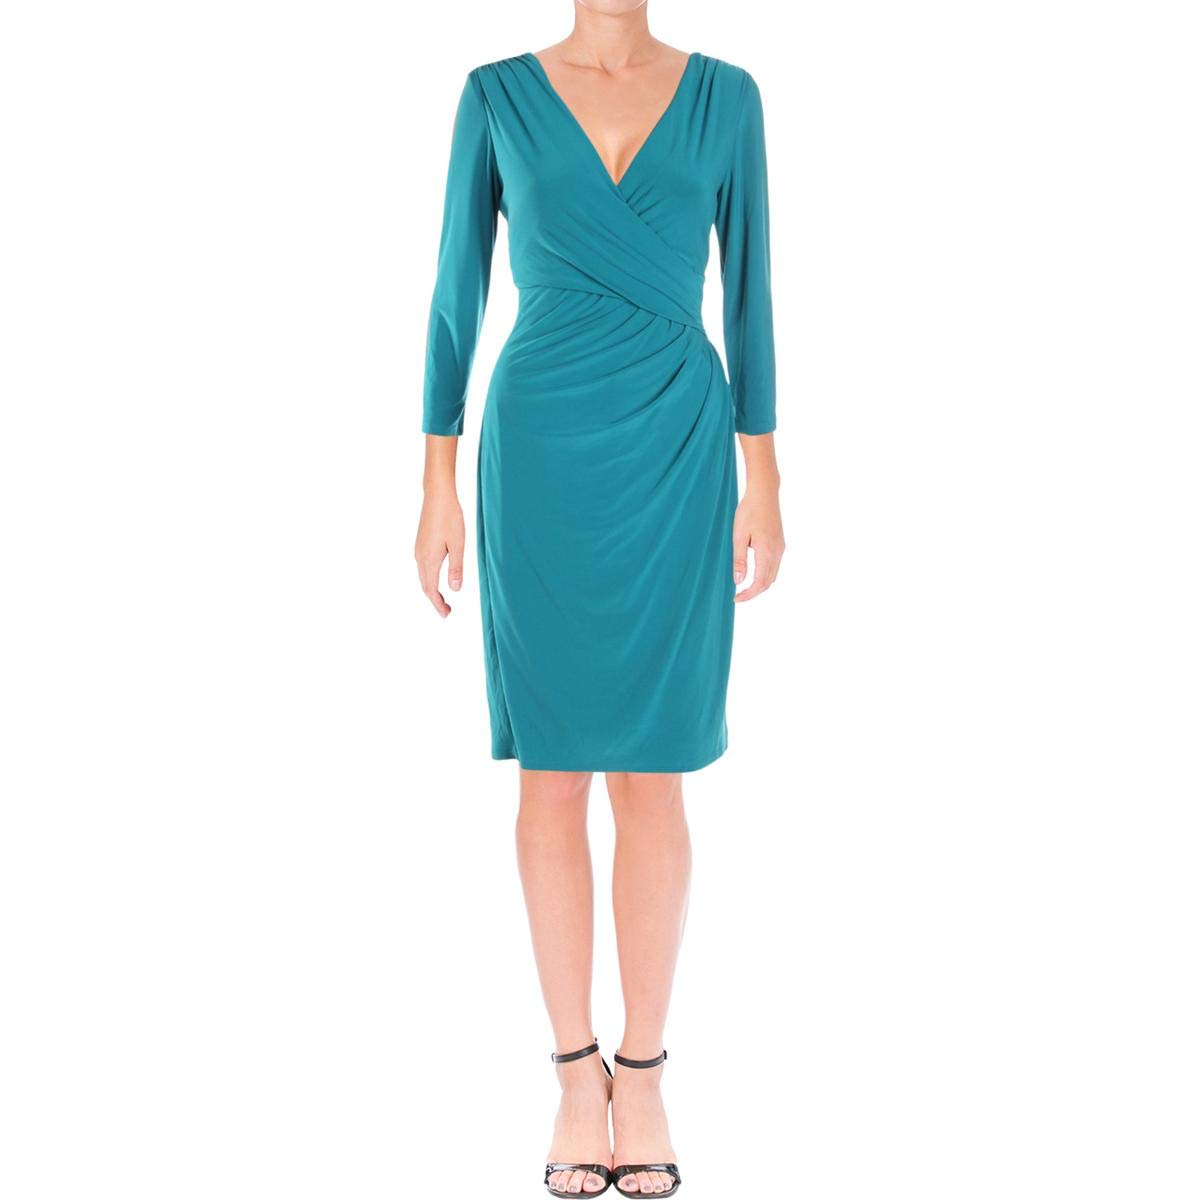 Lauren Ralph Lauren Womens Shirred KneeLength Party Dress Green 10